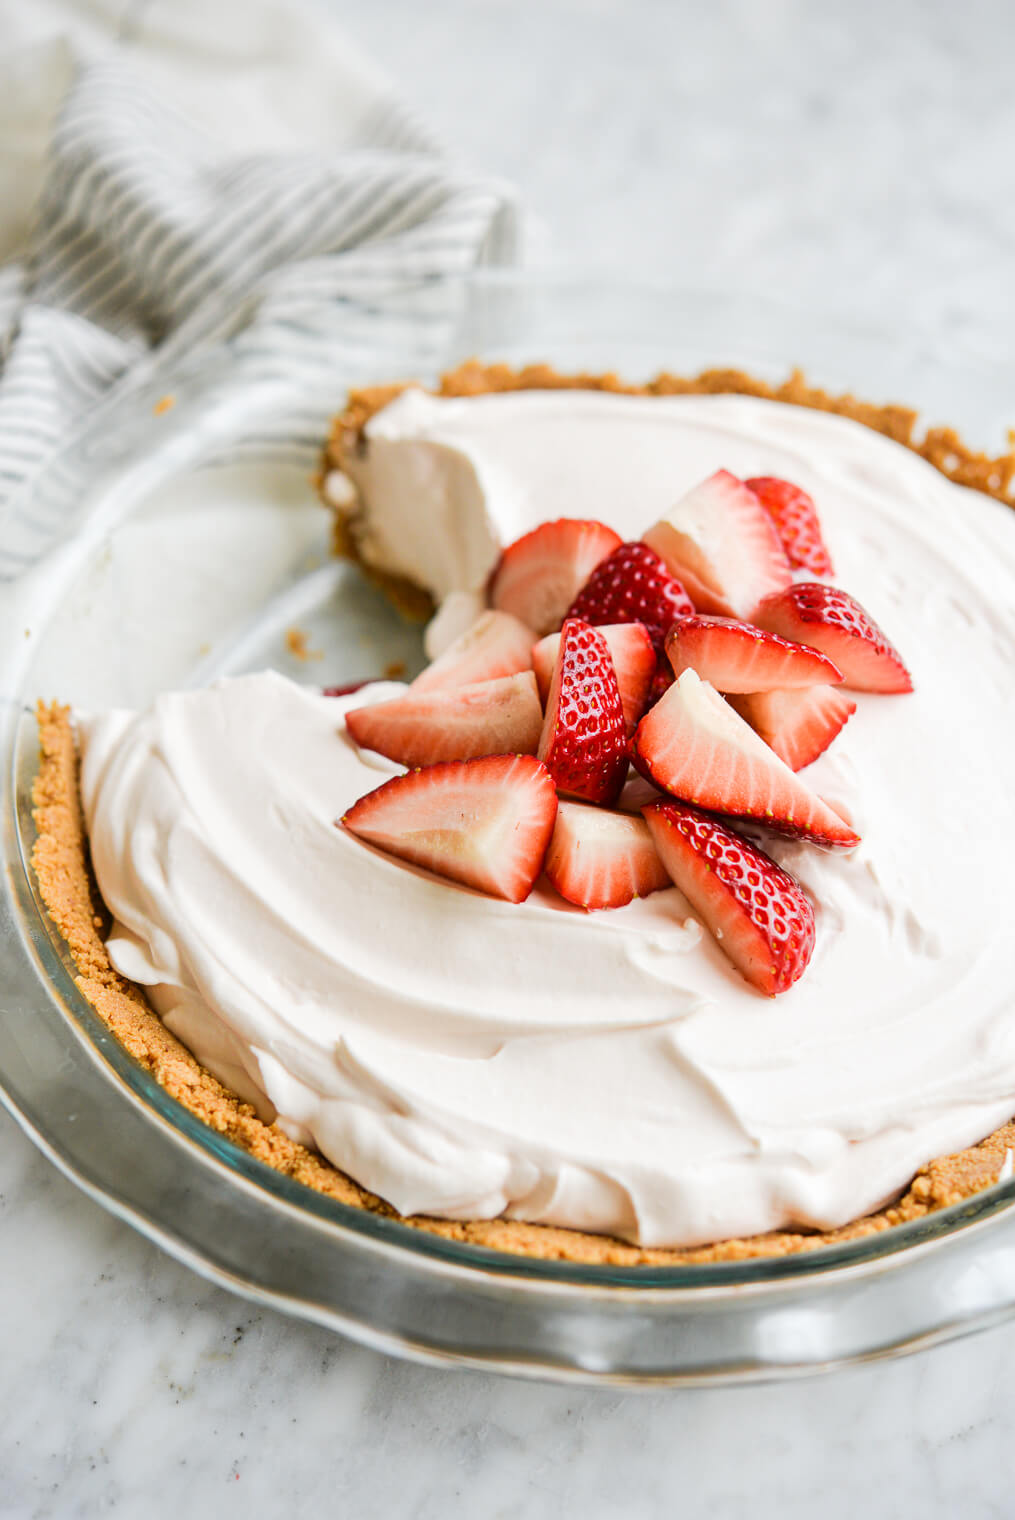 strawberry yogurt pie in a graham cracker crust with chopped strawberries on top